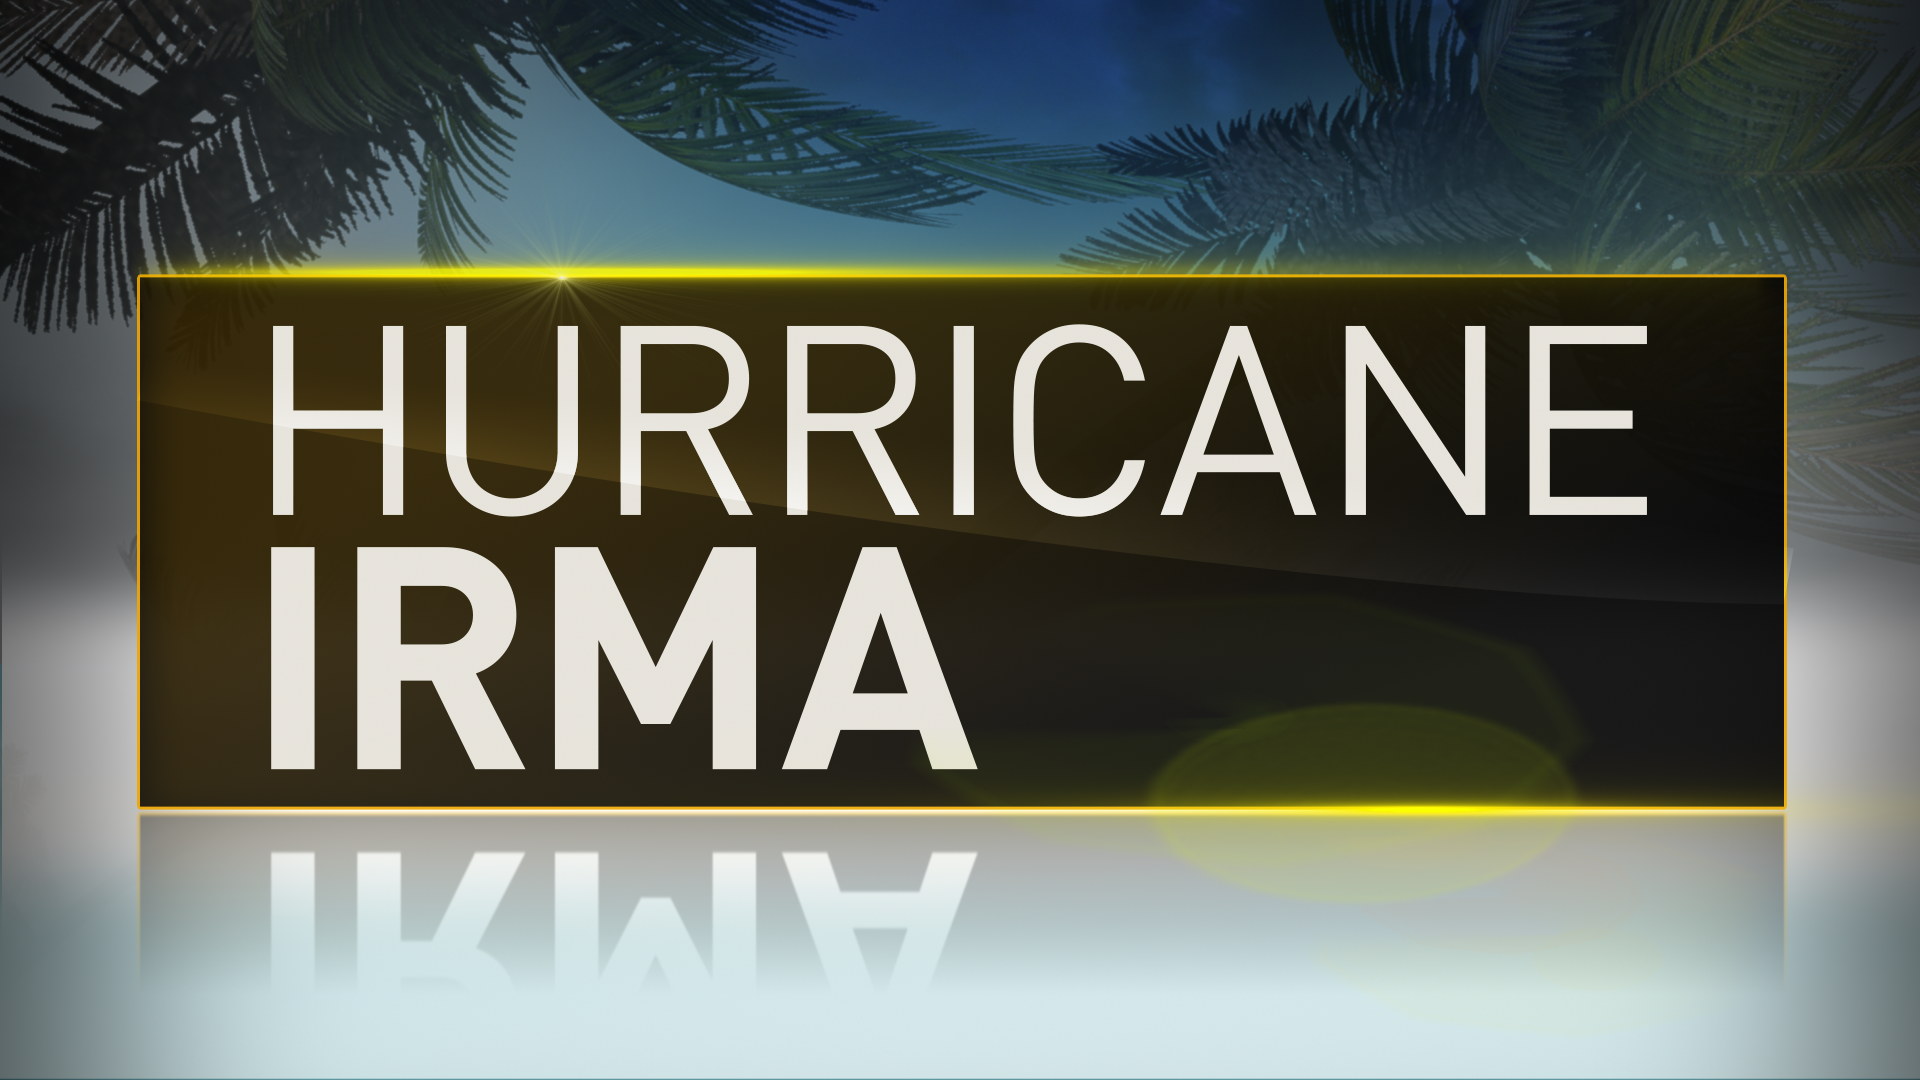 Games & practices cancelled for Irma